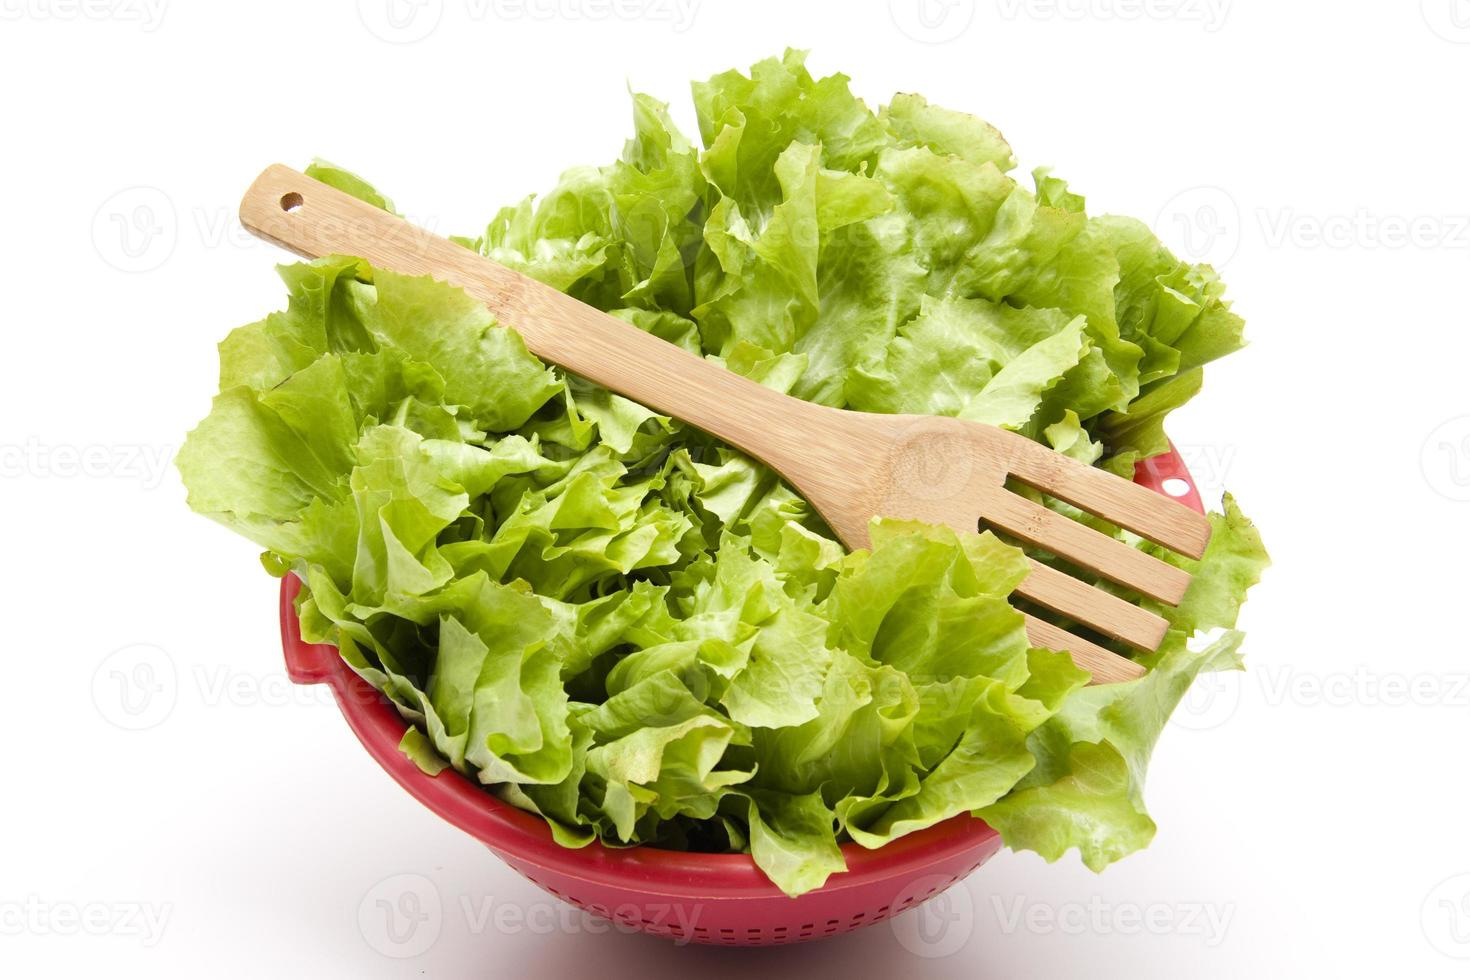 Endives salad with fork in the sieve photo